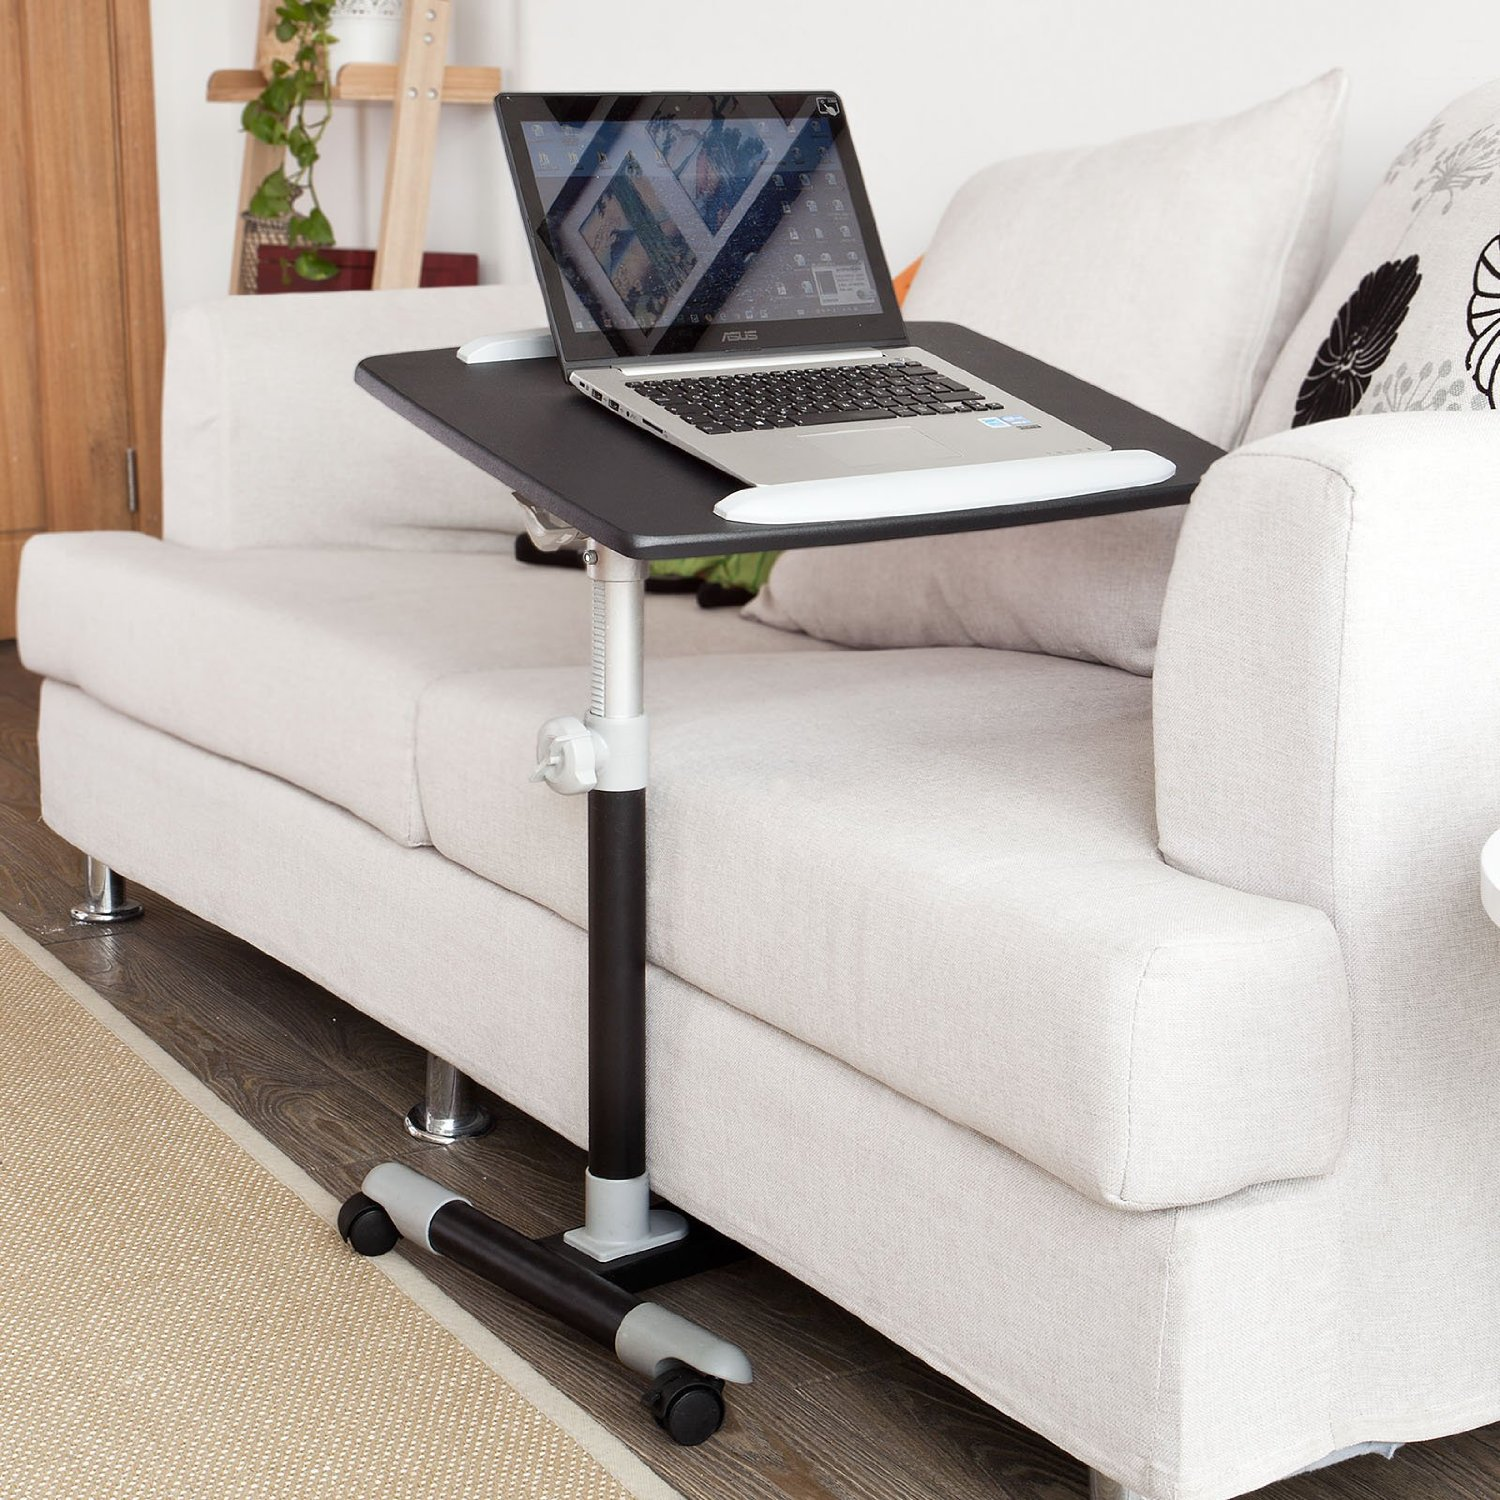 Uitgelezene Buy SoBuy Nursing Home Auto-Touch Overbed Table, Bed Table, Laptop XH-72